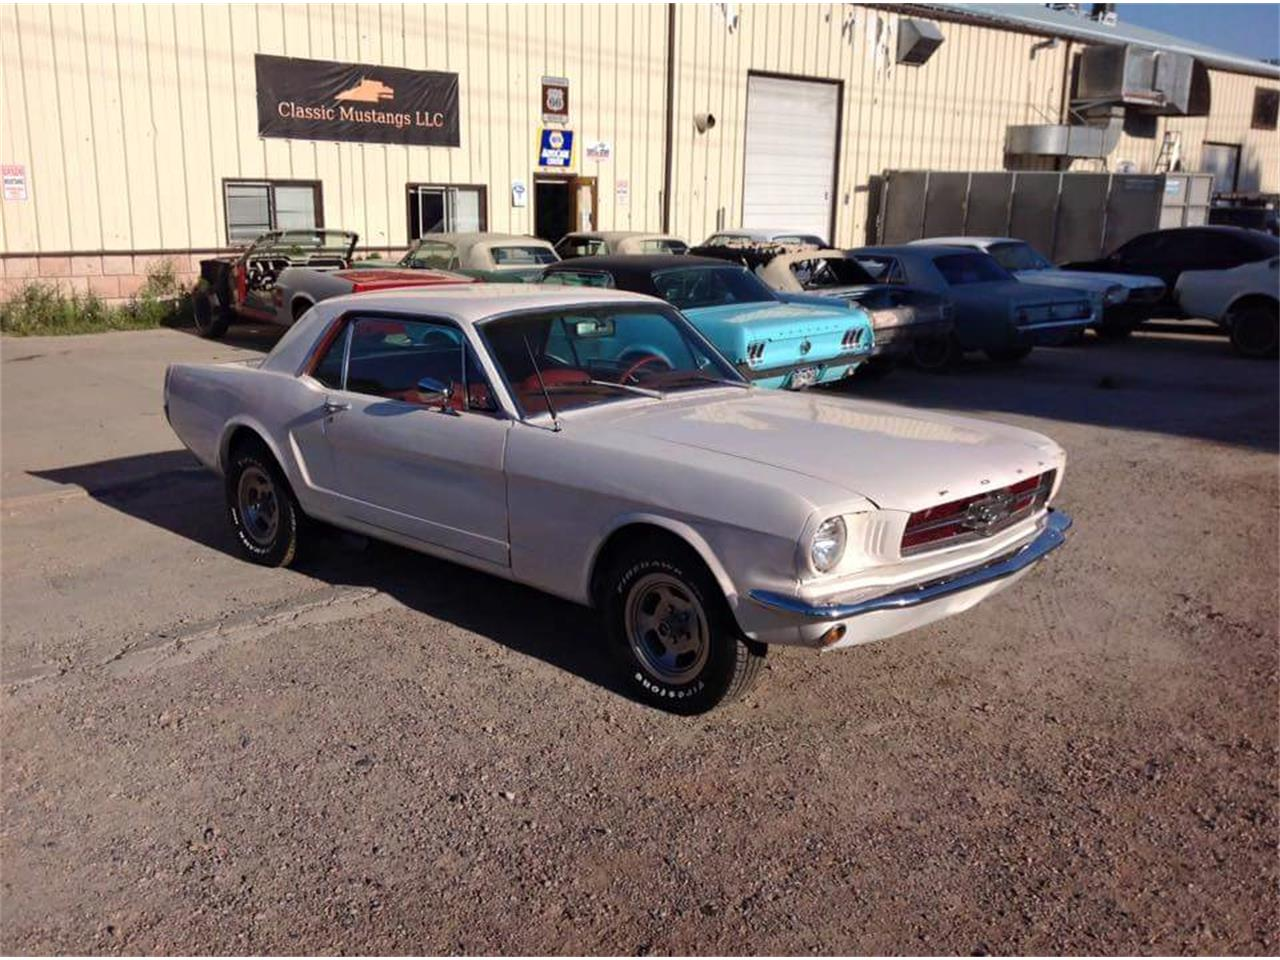 Large Picture of '65 Ford Mustang located in Colorado - $19,500.00 Offered by a Private Seller - IW8P